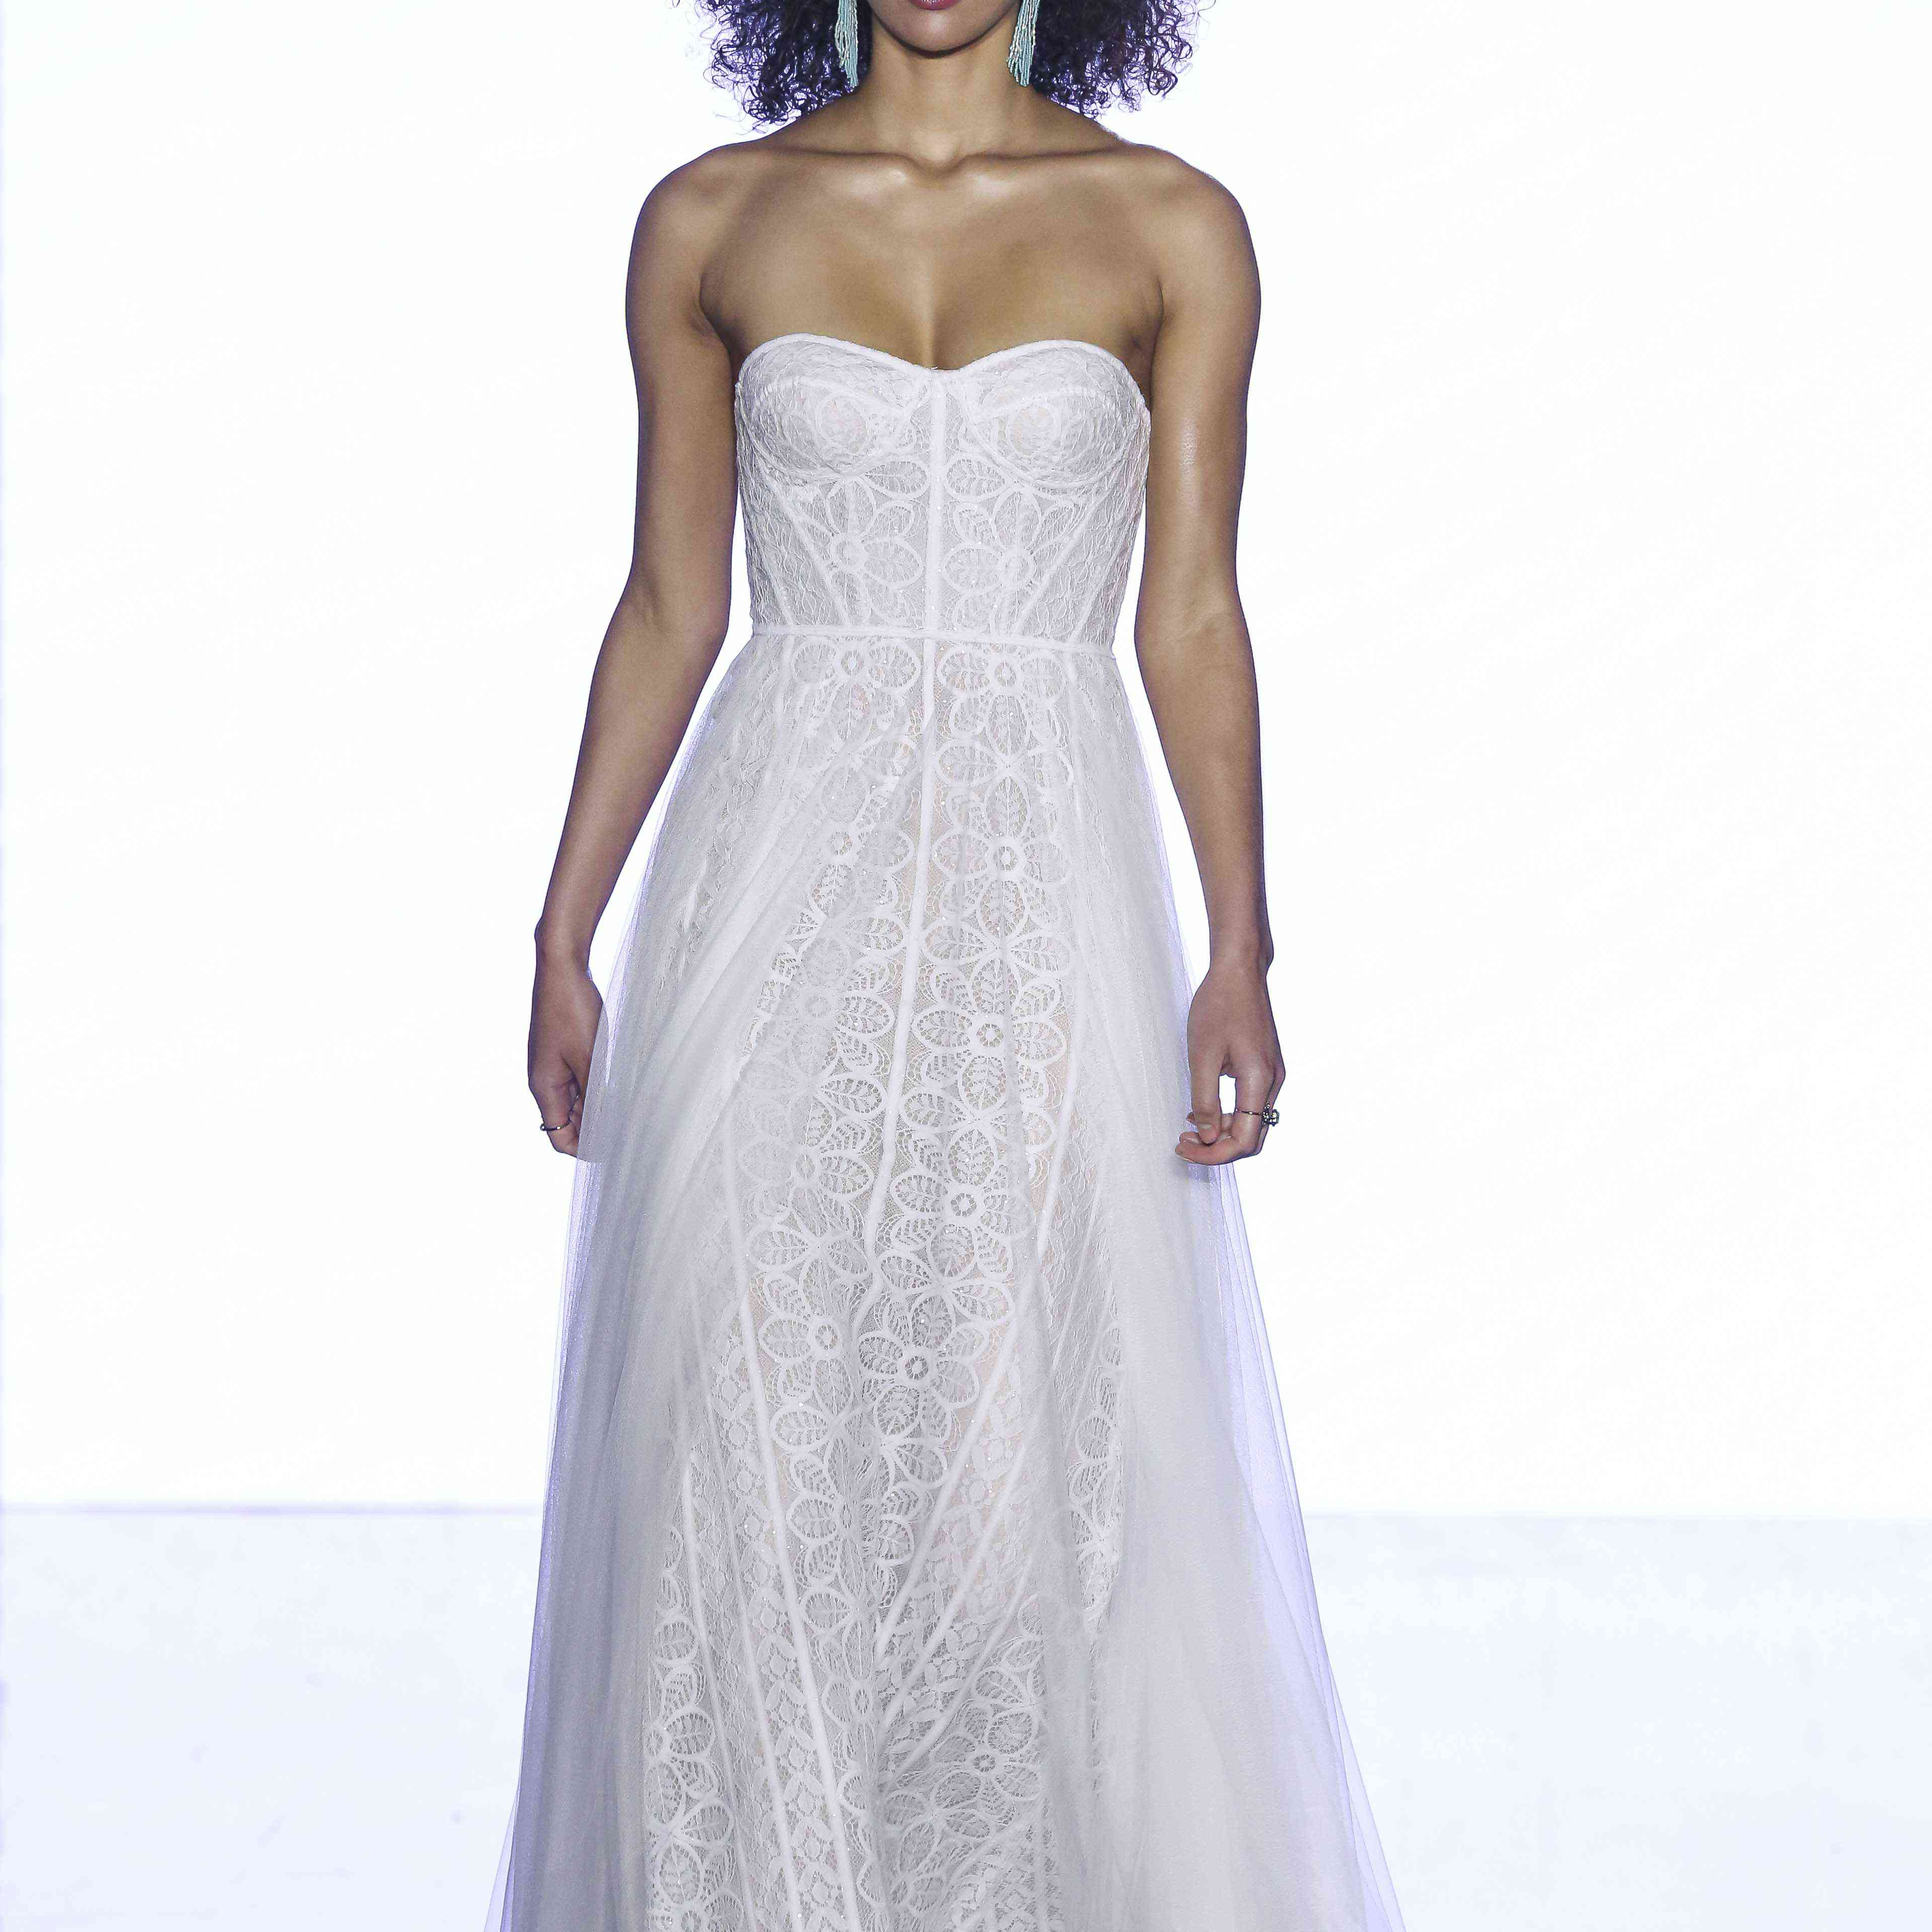 Model in strapless lace A-line gown with structured bodice and netting and tulle skirt overlay